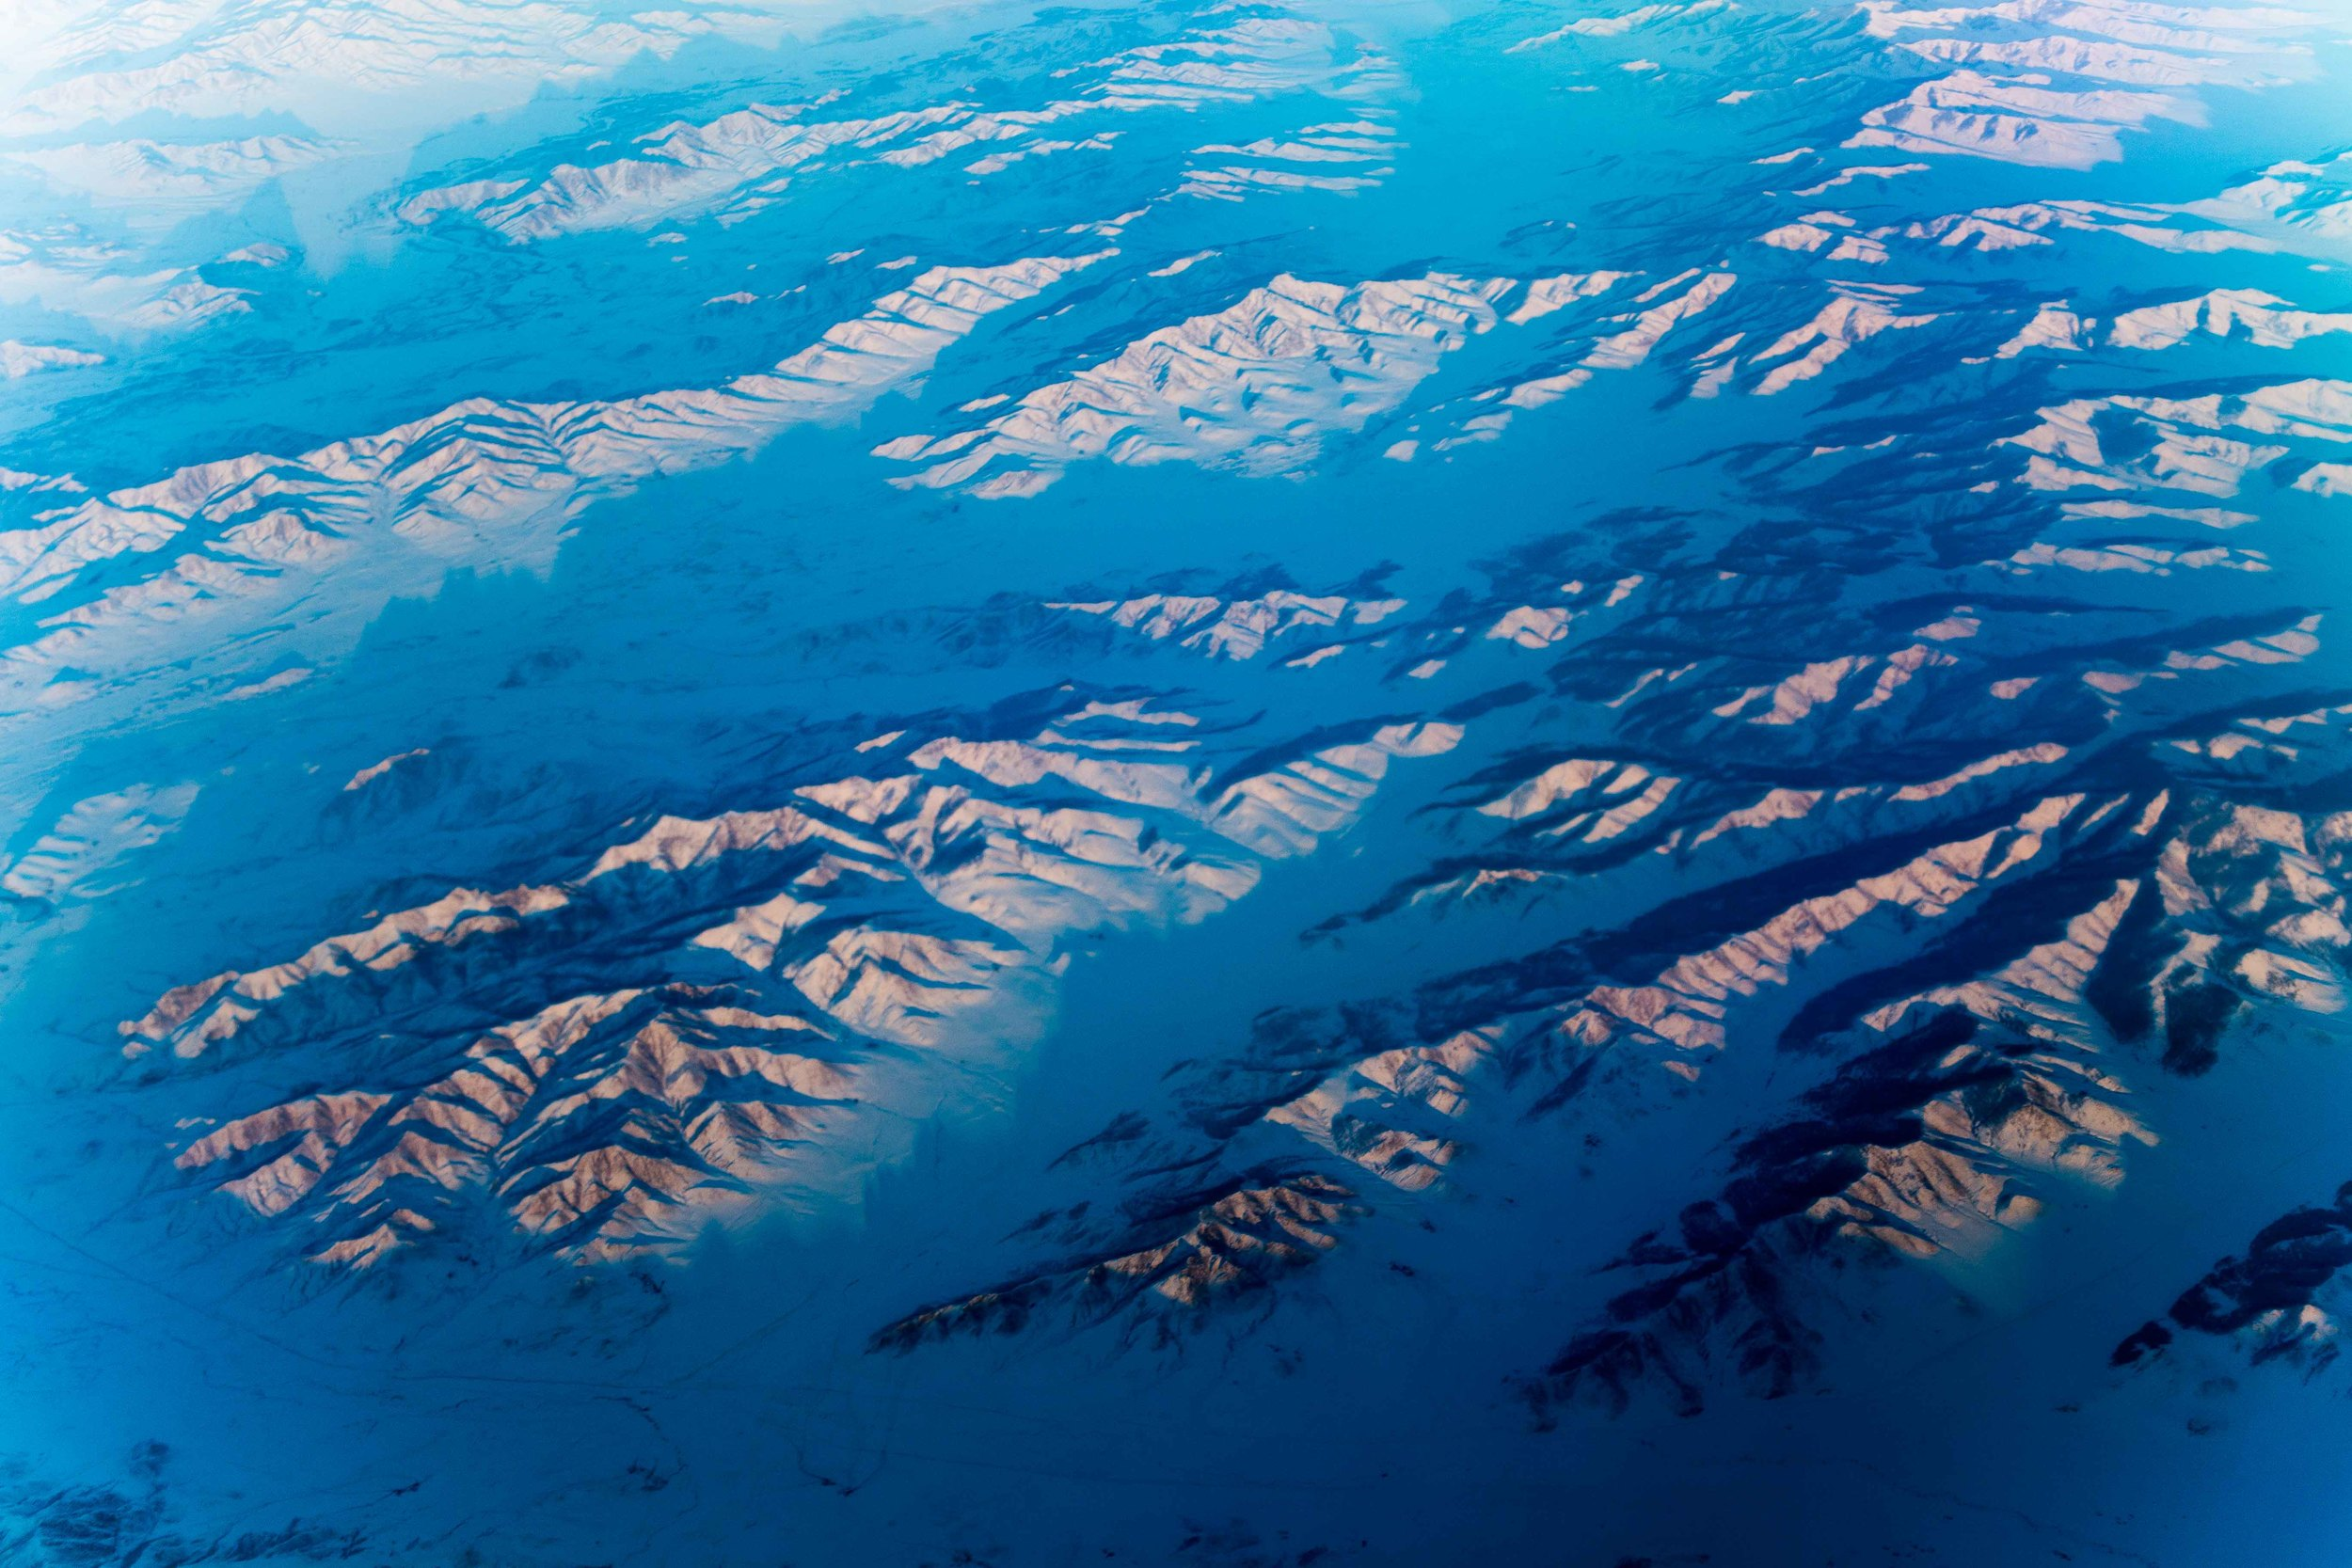 landscapes over Ulan Bater, Mongolia (9 of 11).jpg